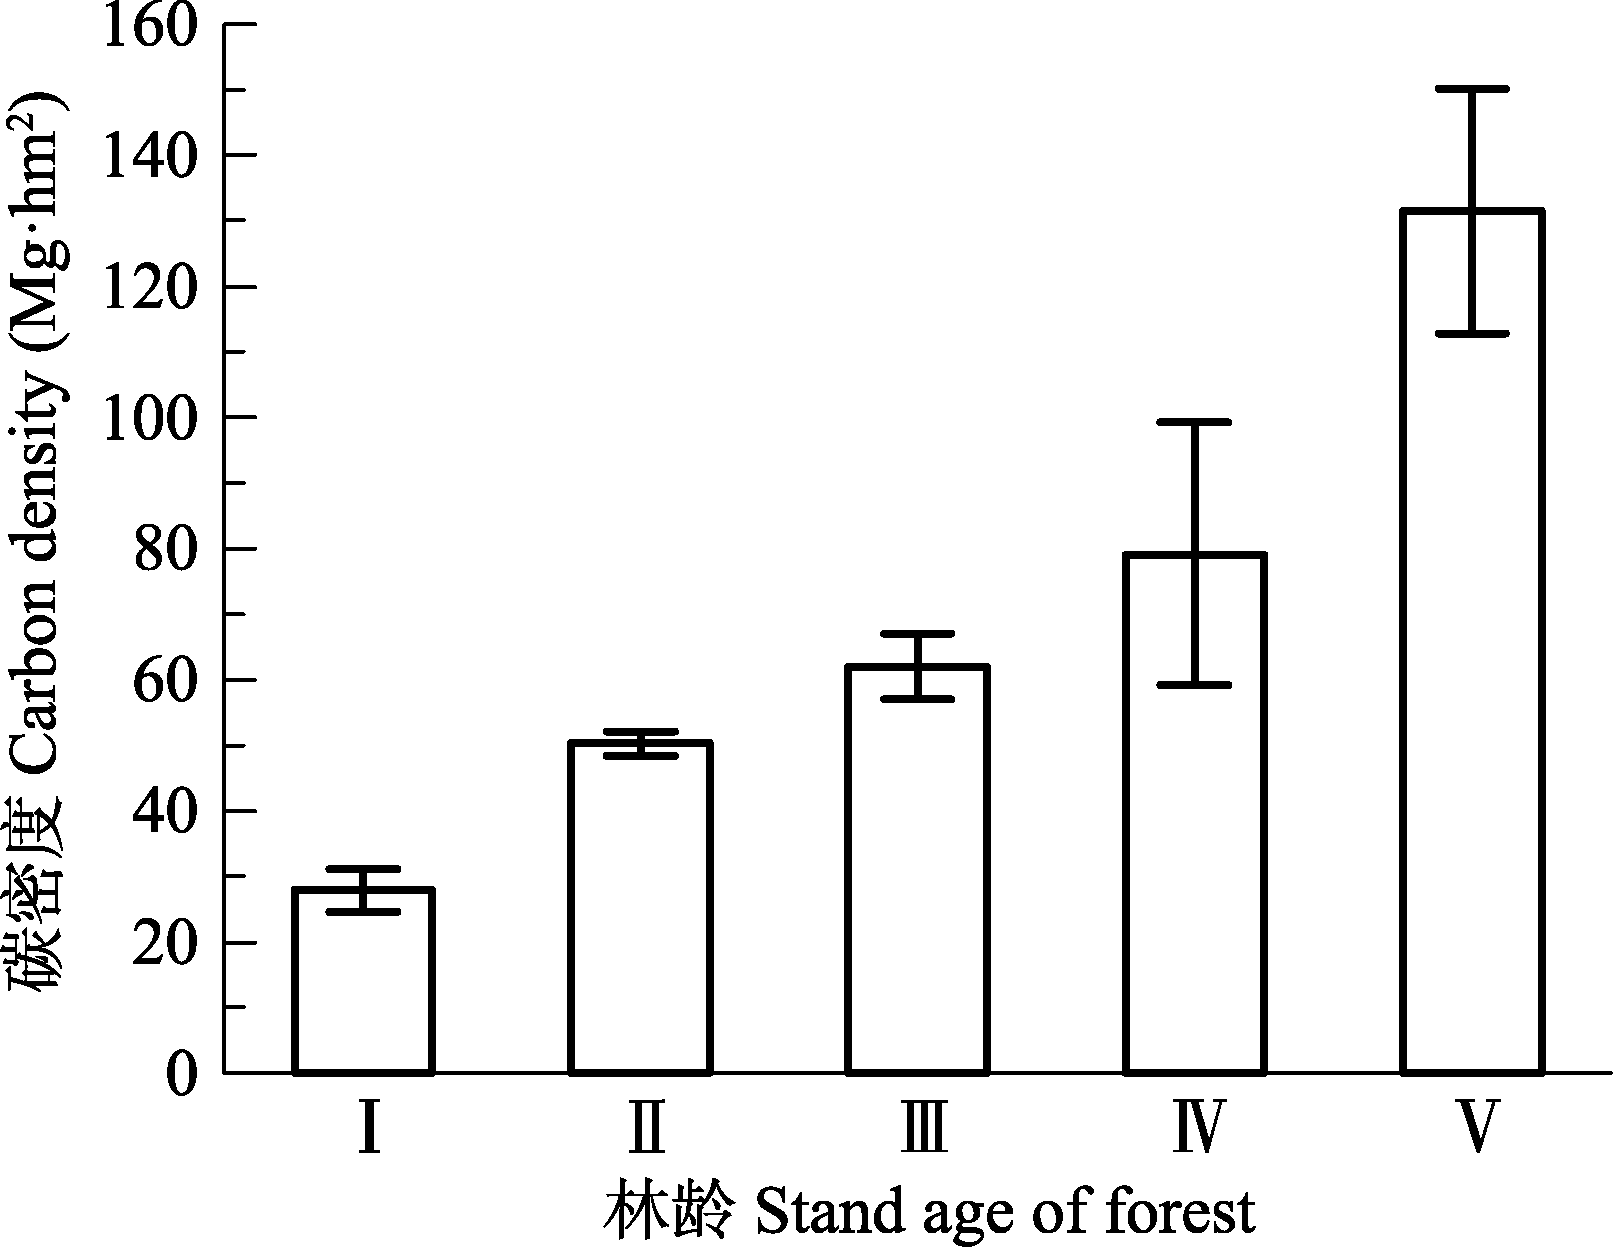 hight resolution of carbon density of tree layer among different forest age classes in qinghai province mean sd i young forest ii middle aged forest iii near mature